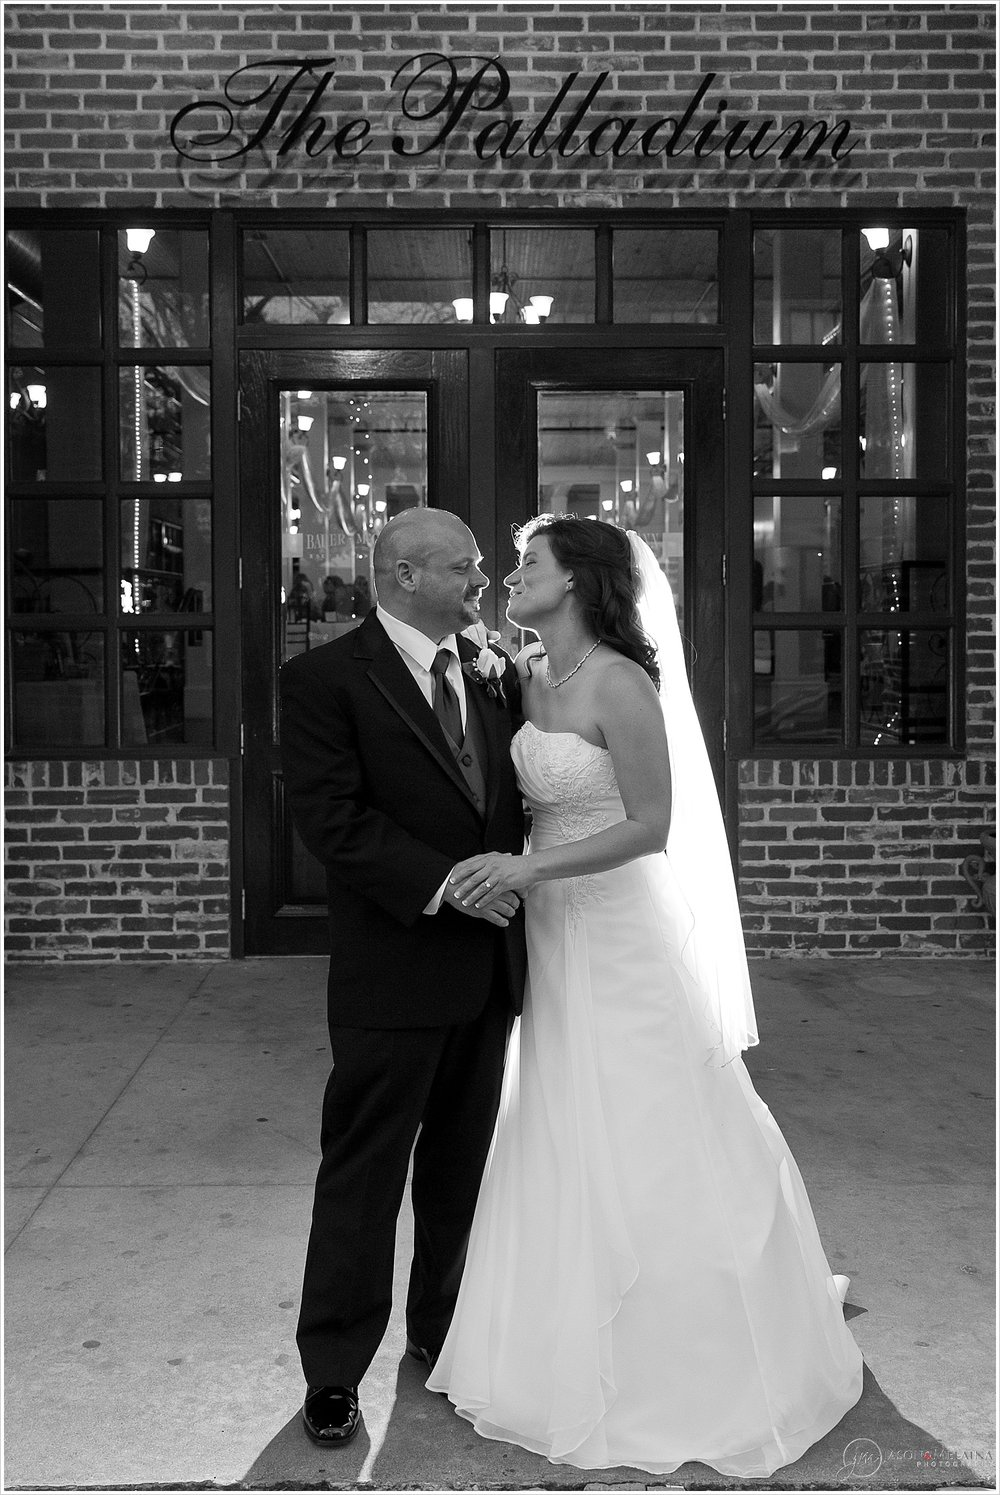 Bride and groom pose in front of The Palladium in Waco, Texas